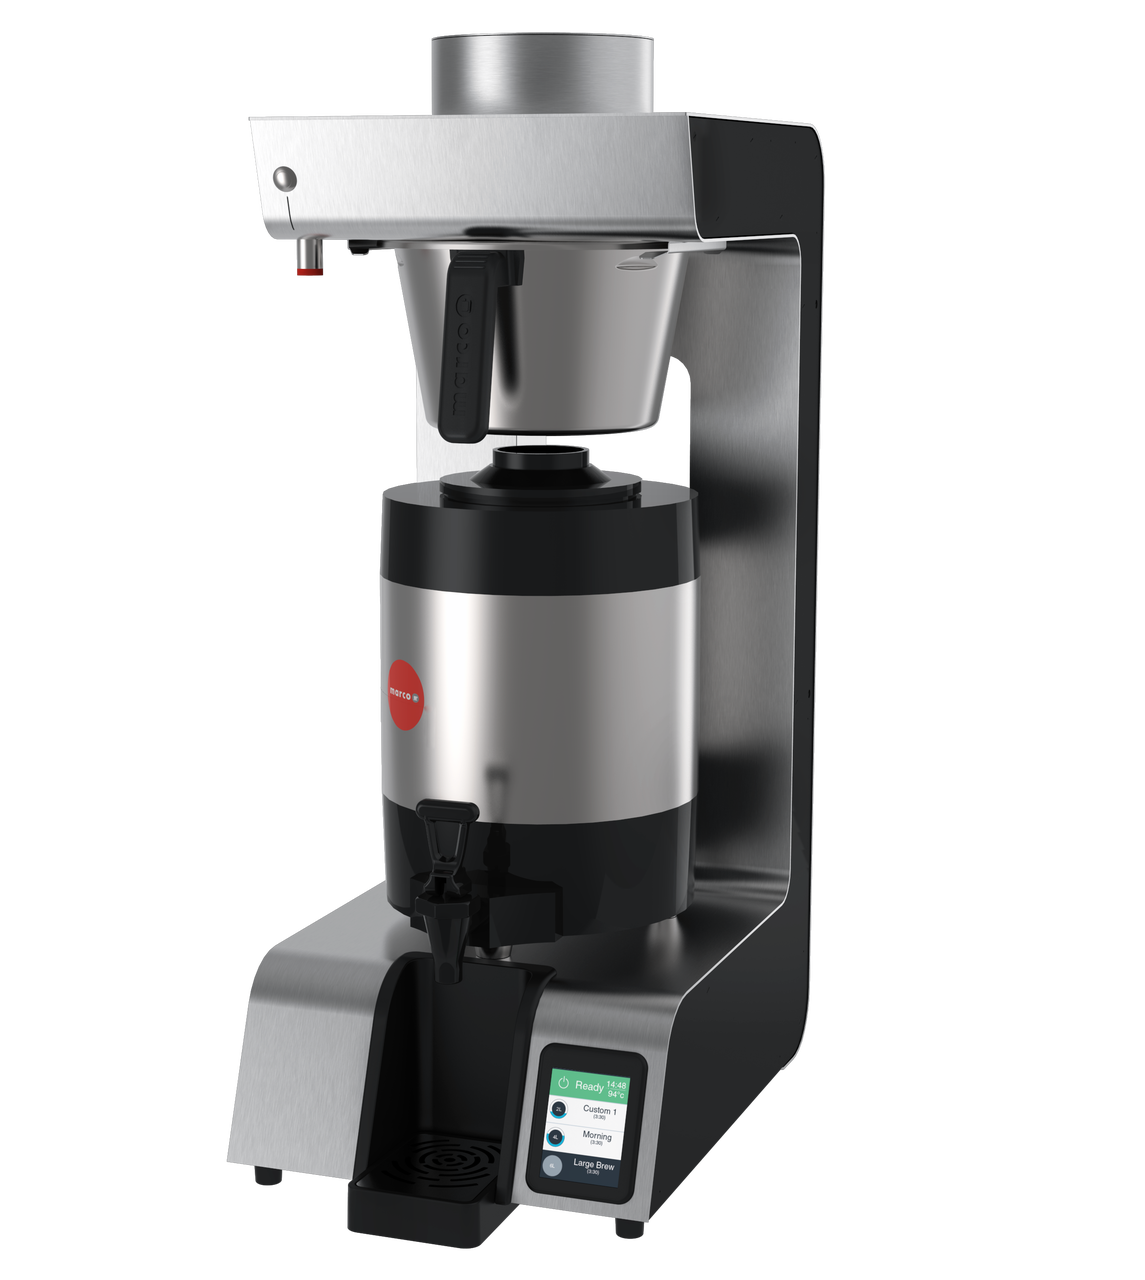 Marco Jet 5.6 Filter Coffee Brewer - Visions Espresso Service, Inc.